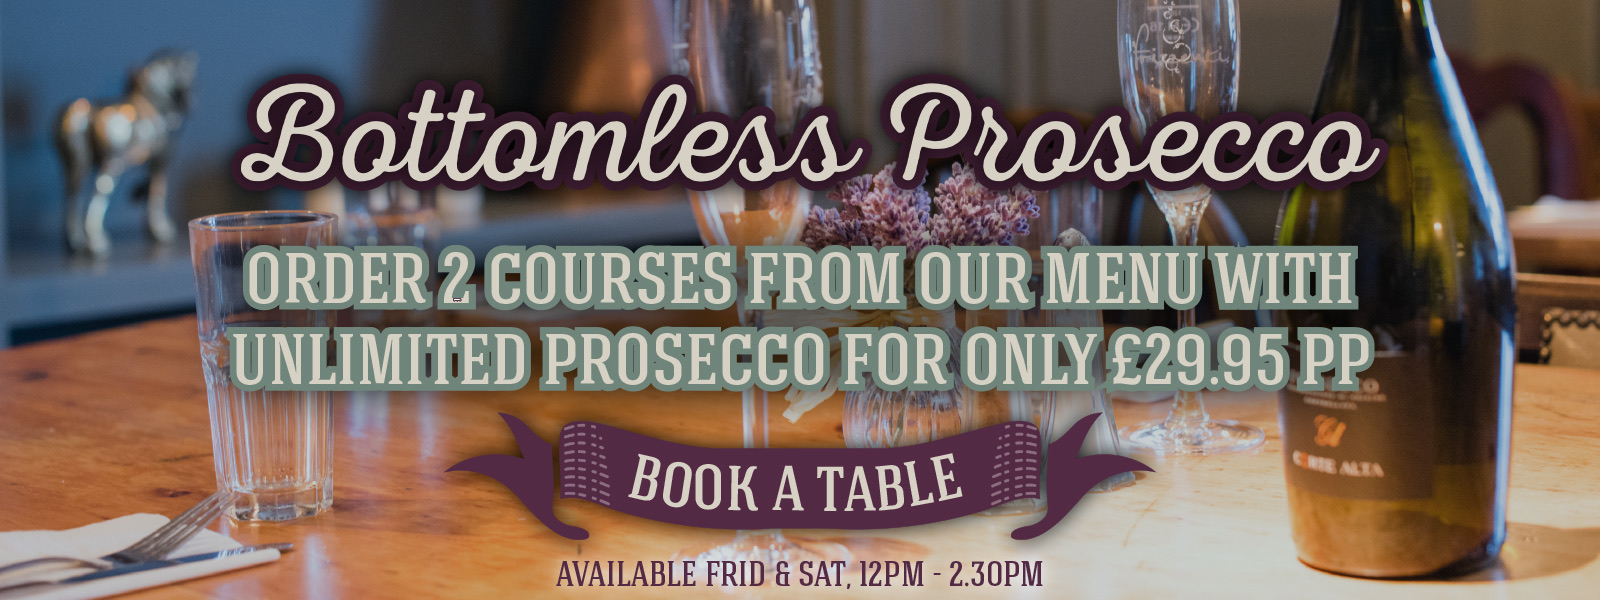 Bottomless Prosecco – order 2 courses from our menu with unlimited prosecco for only £29.95 pp